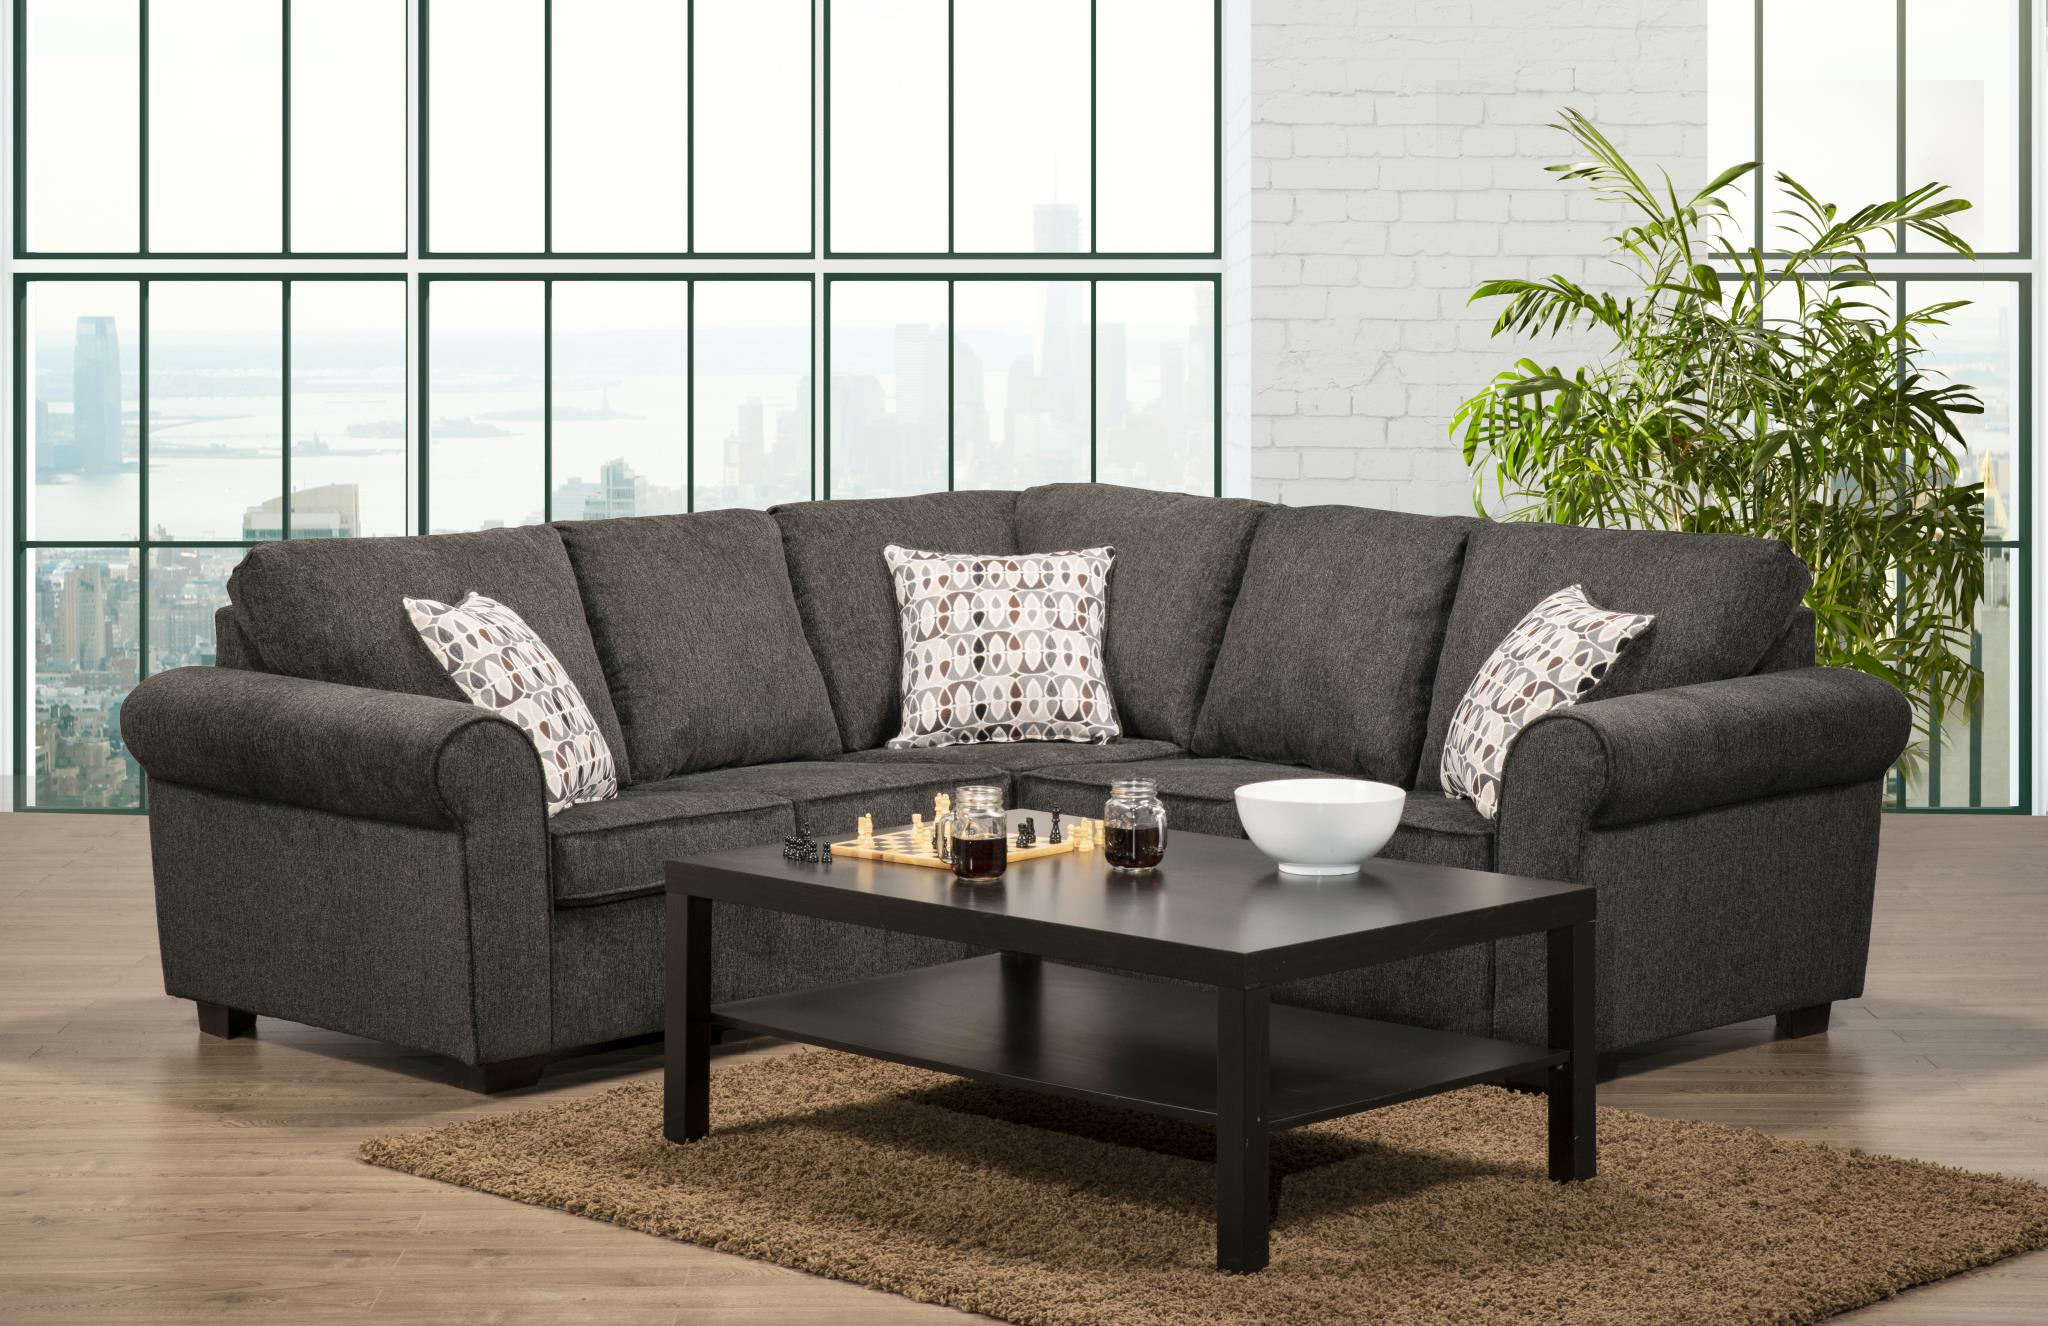 6005 Chenille Charcoal Fabric Sectional Made In Canada Affordable Mattress And Furniture